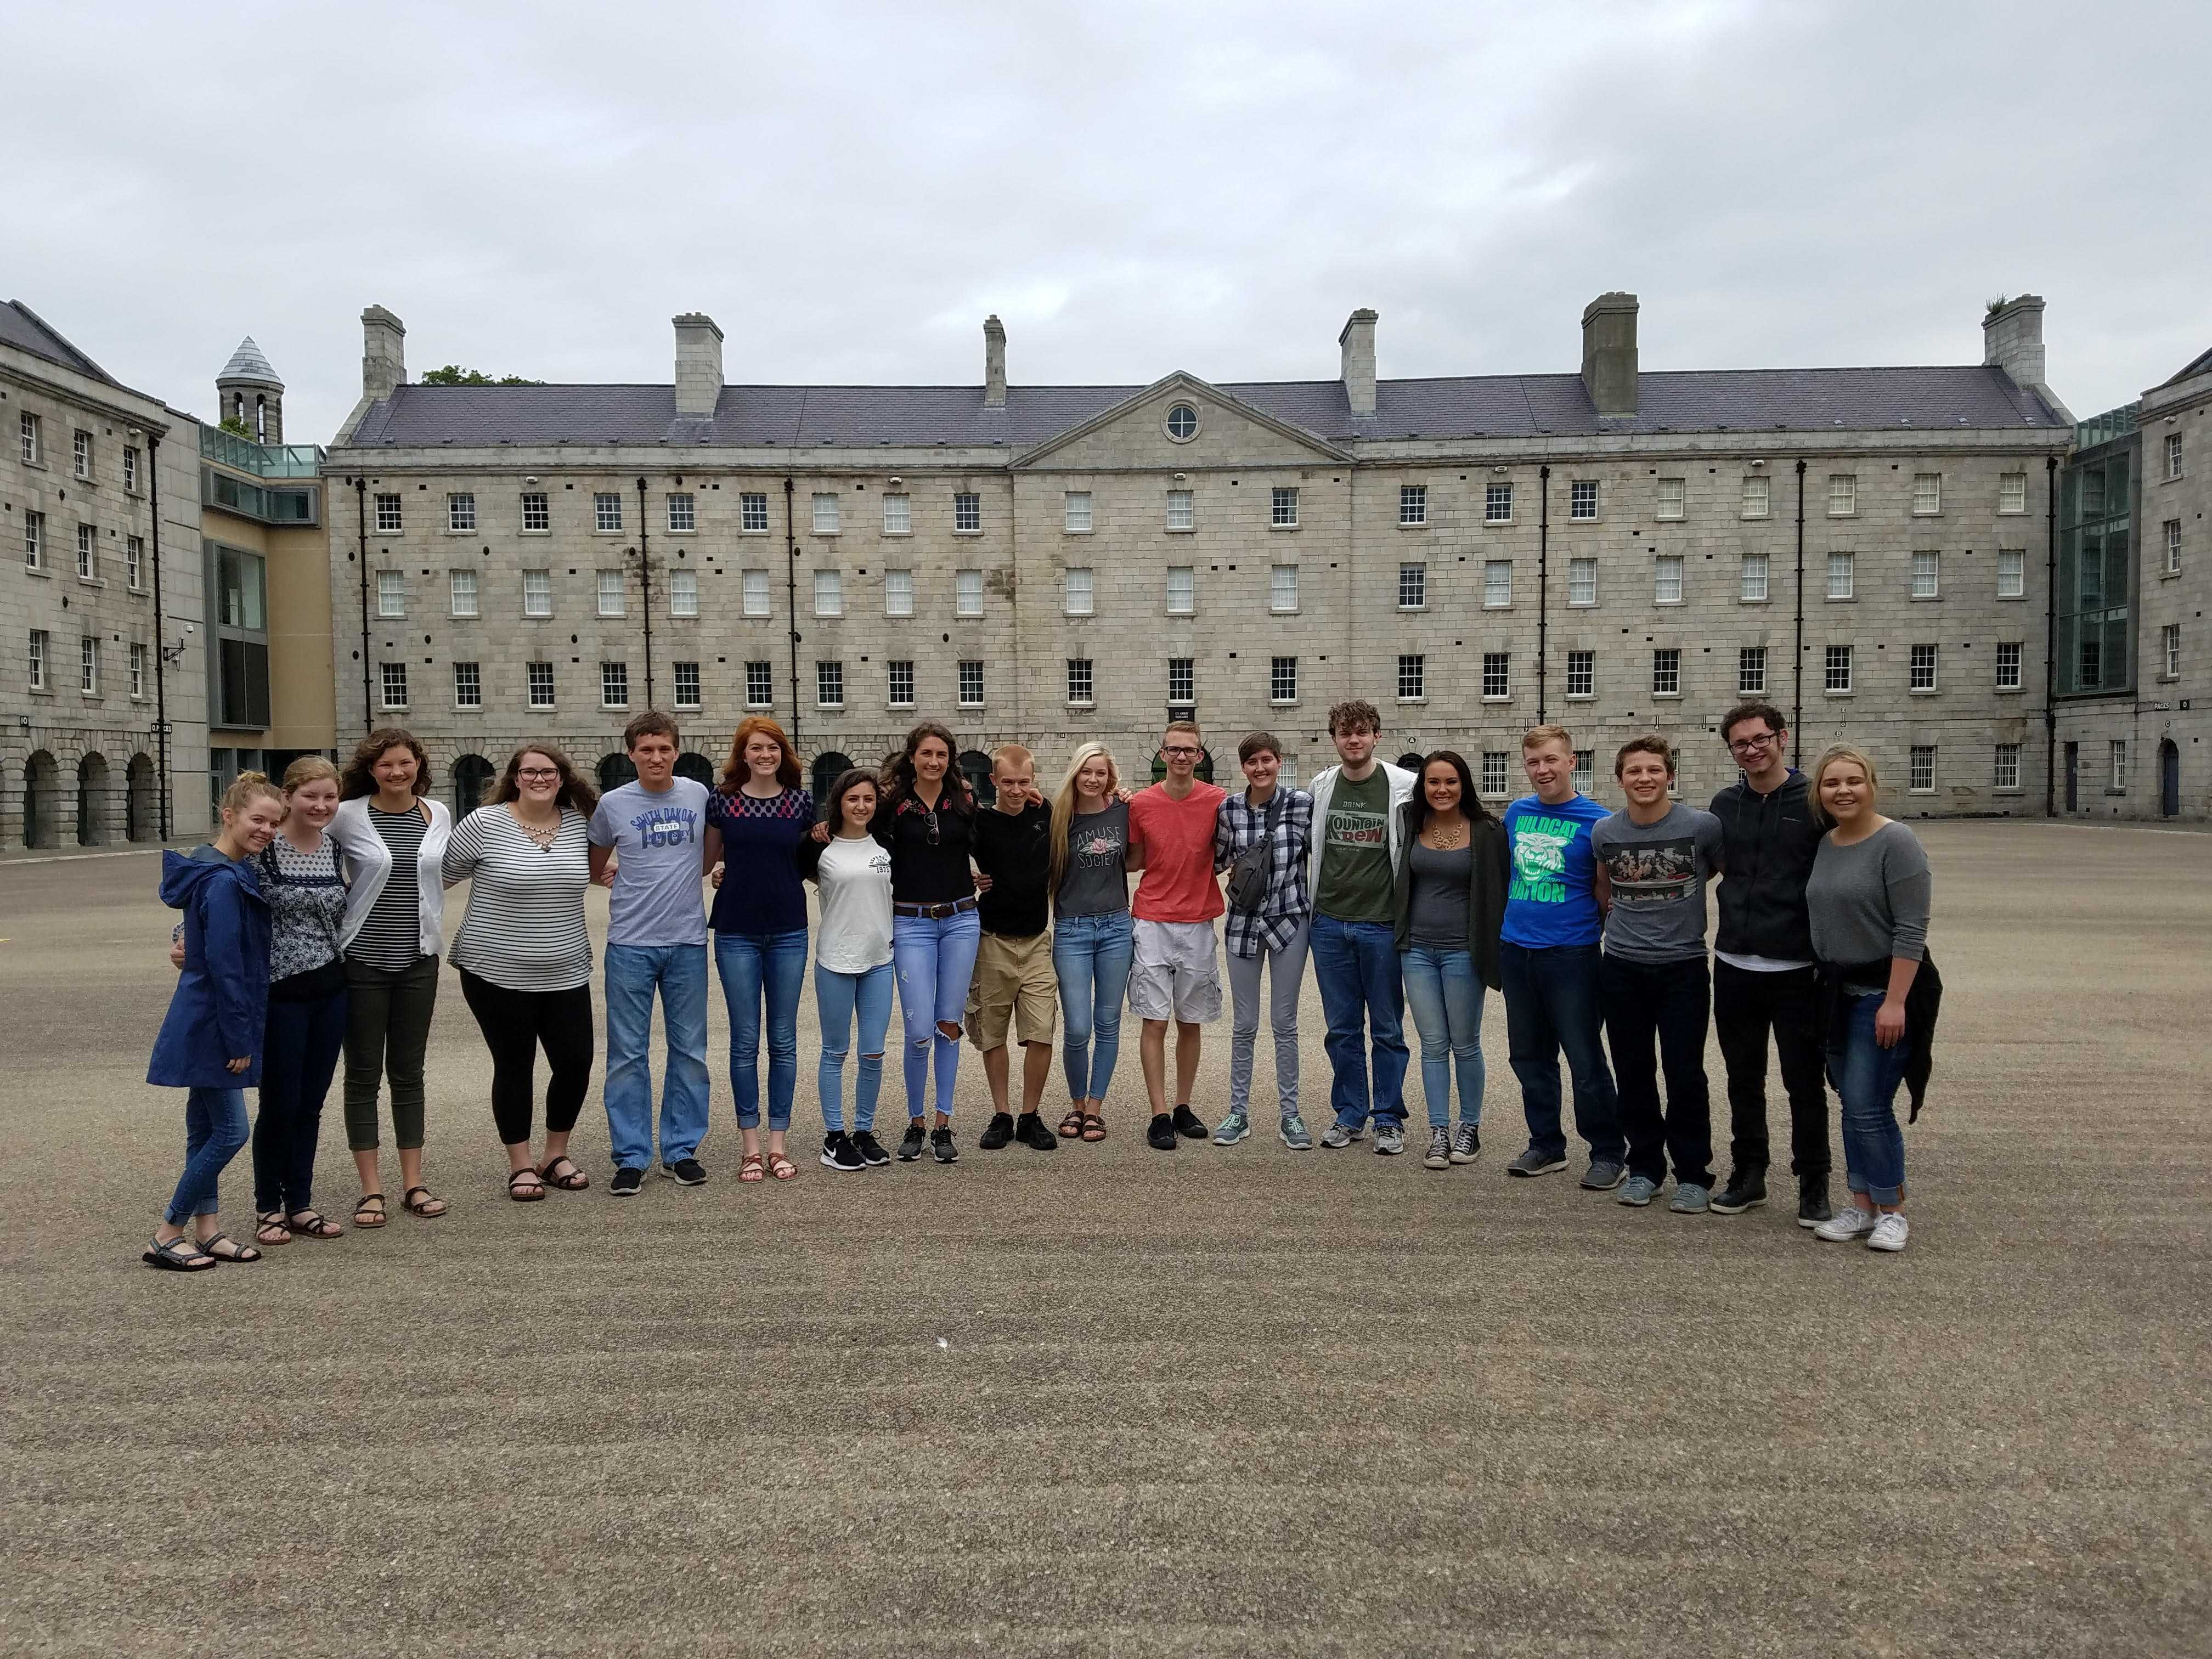 SUBMITTED SDSU students take a pre-freshman study abroad experience to Ireland in the summer of 2017. The group went abroad before they moved on campus at SDSU in fall of 2017.